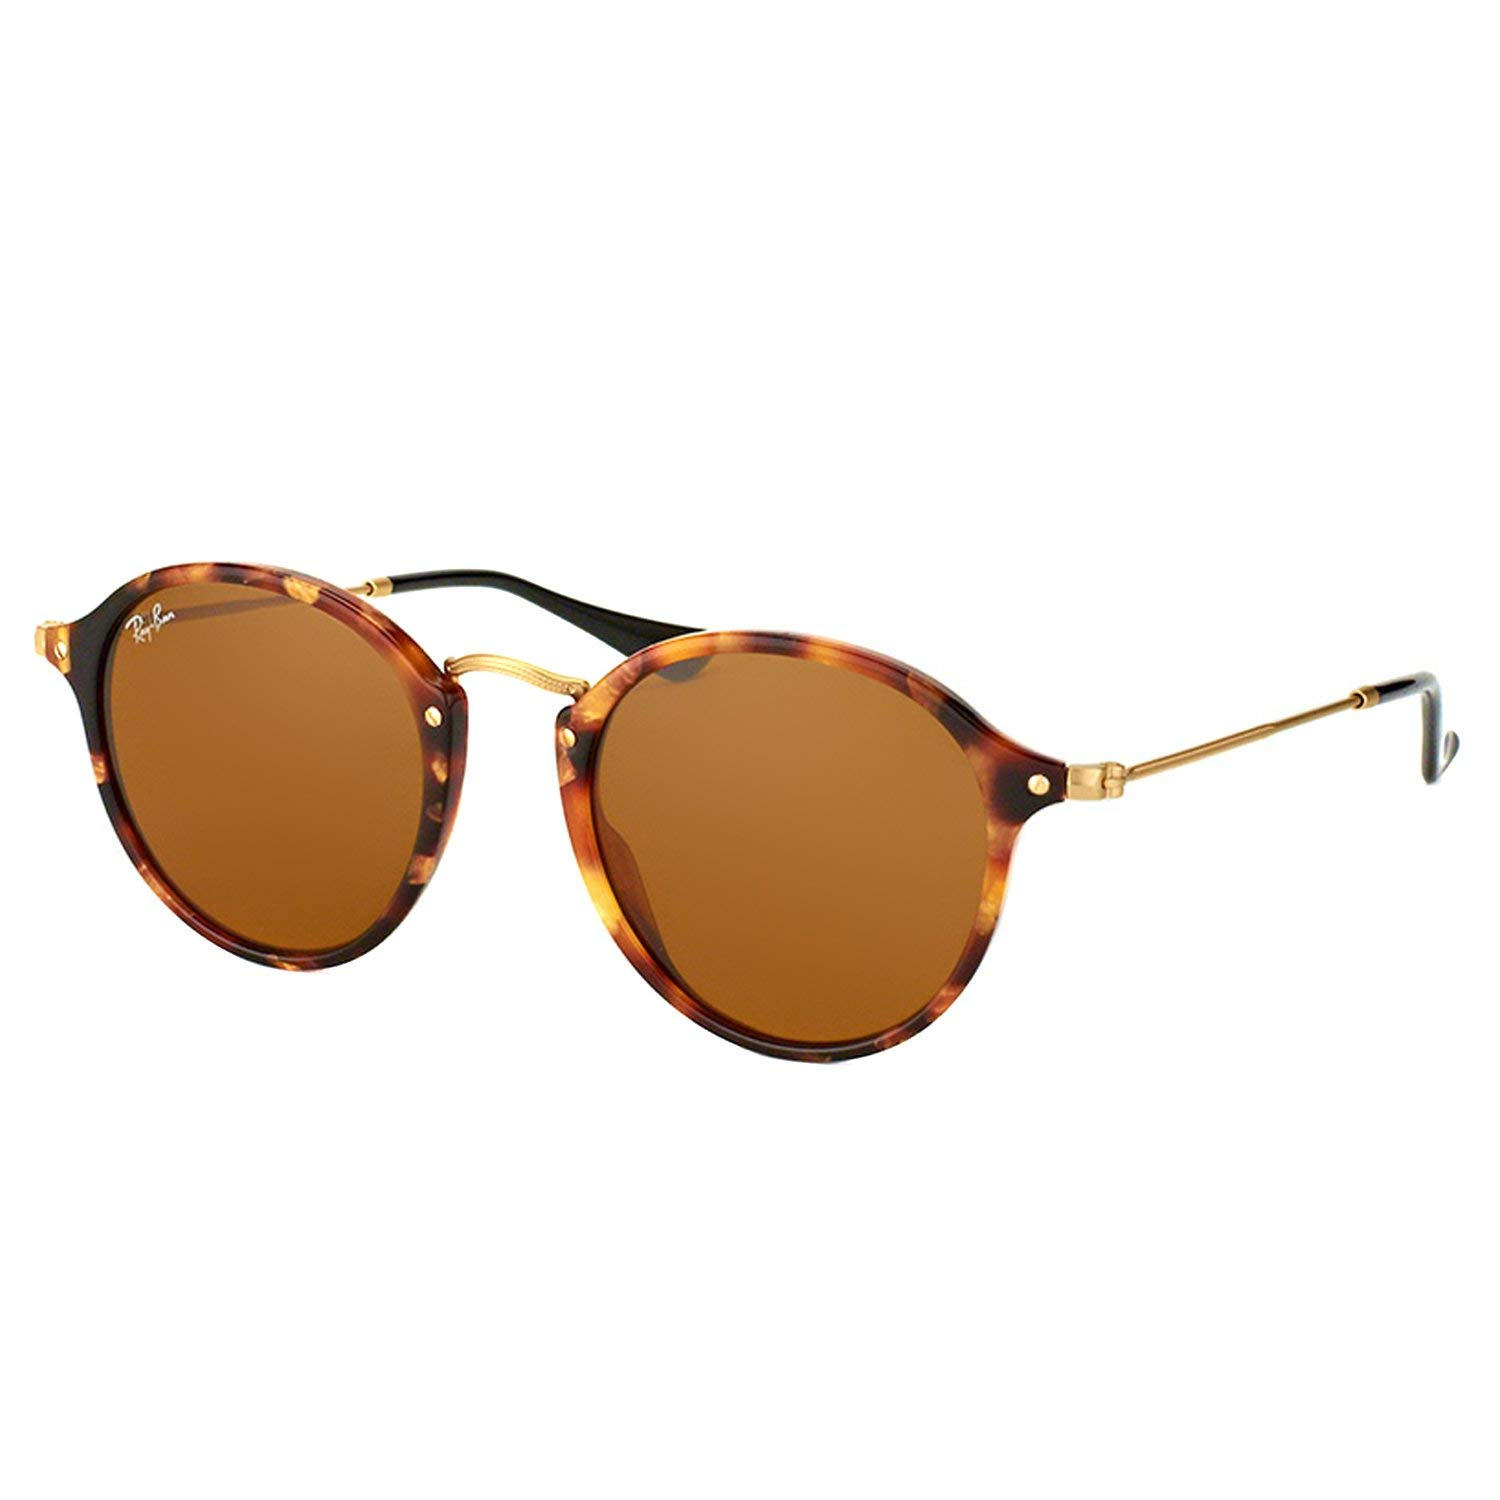 1ba32d5aac62a Amazon.com  Ray-Ban RB2447 1160 Round Fleck Sunglasses Tortoise Frame    Brown Lens 52mm  Clothing